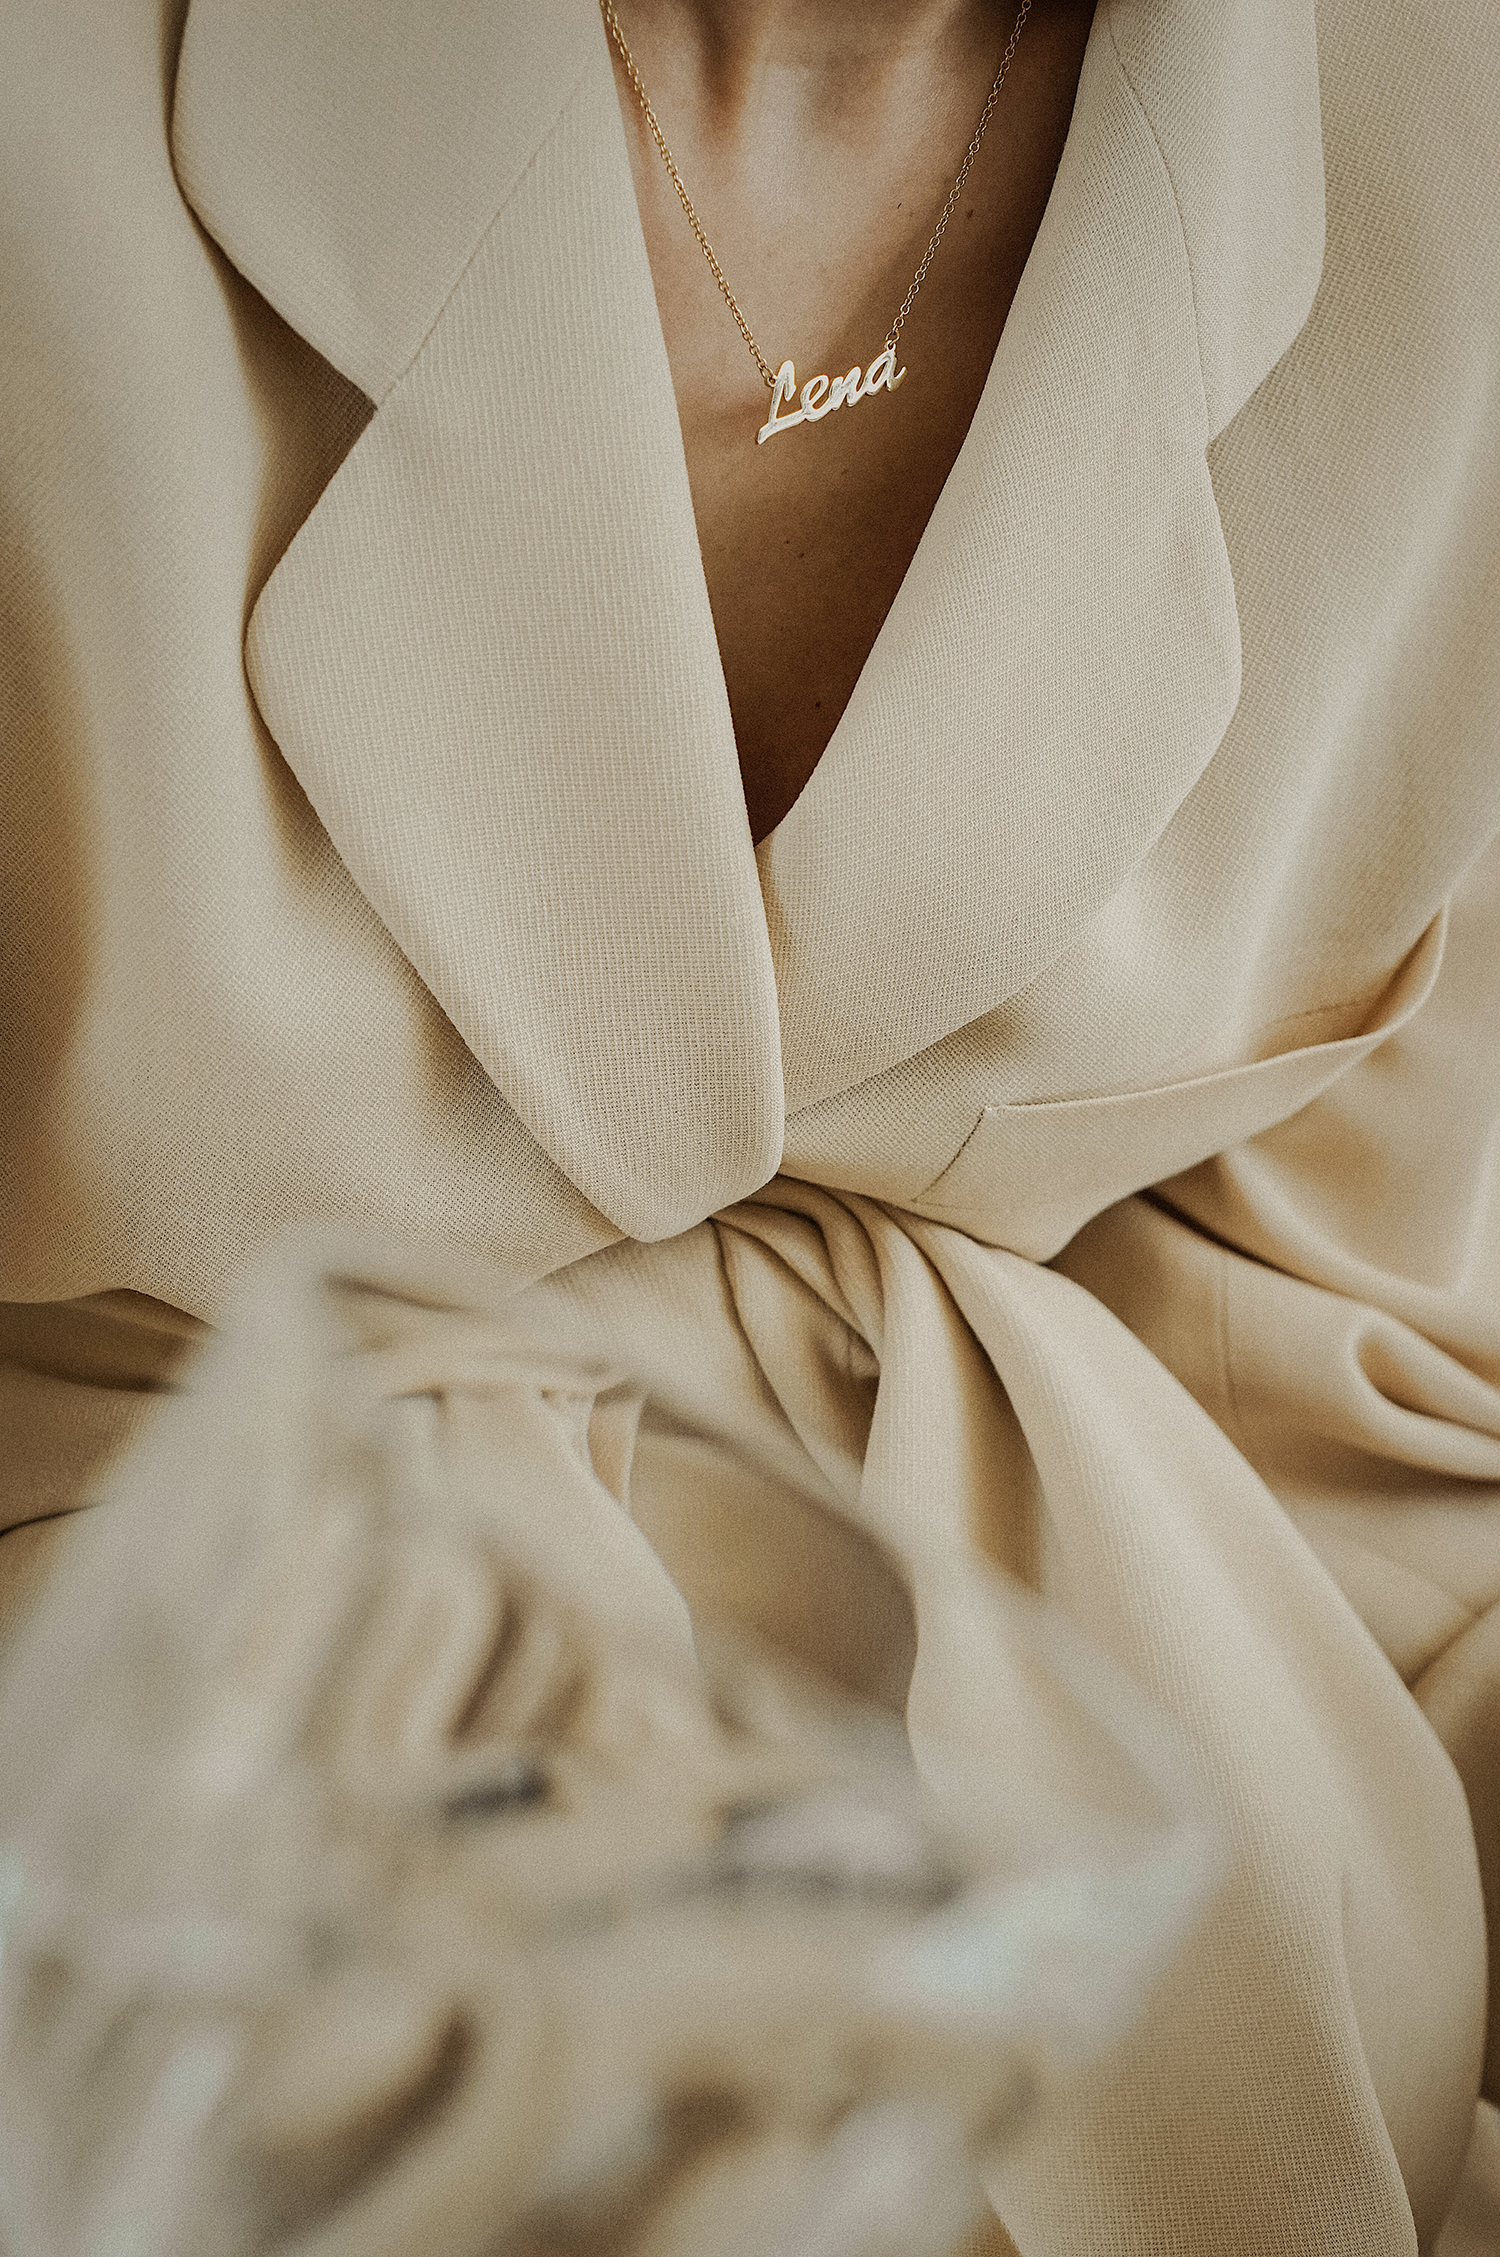 soufeel_name_necklace_nude_neutral_donna_karan_suit_fashion_style_lenajuice_thewhiteocean_01